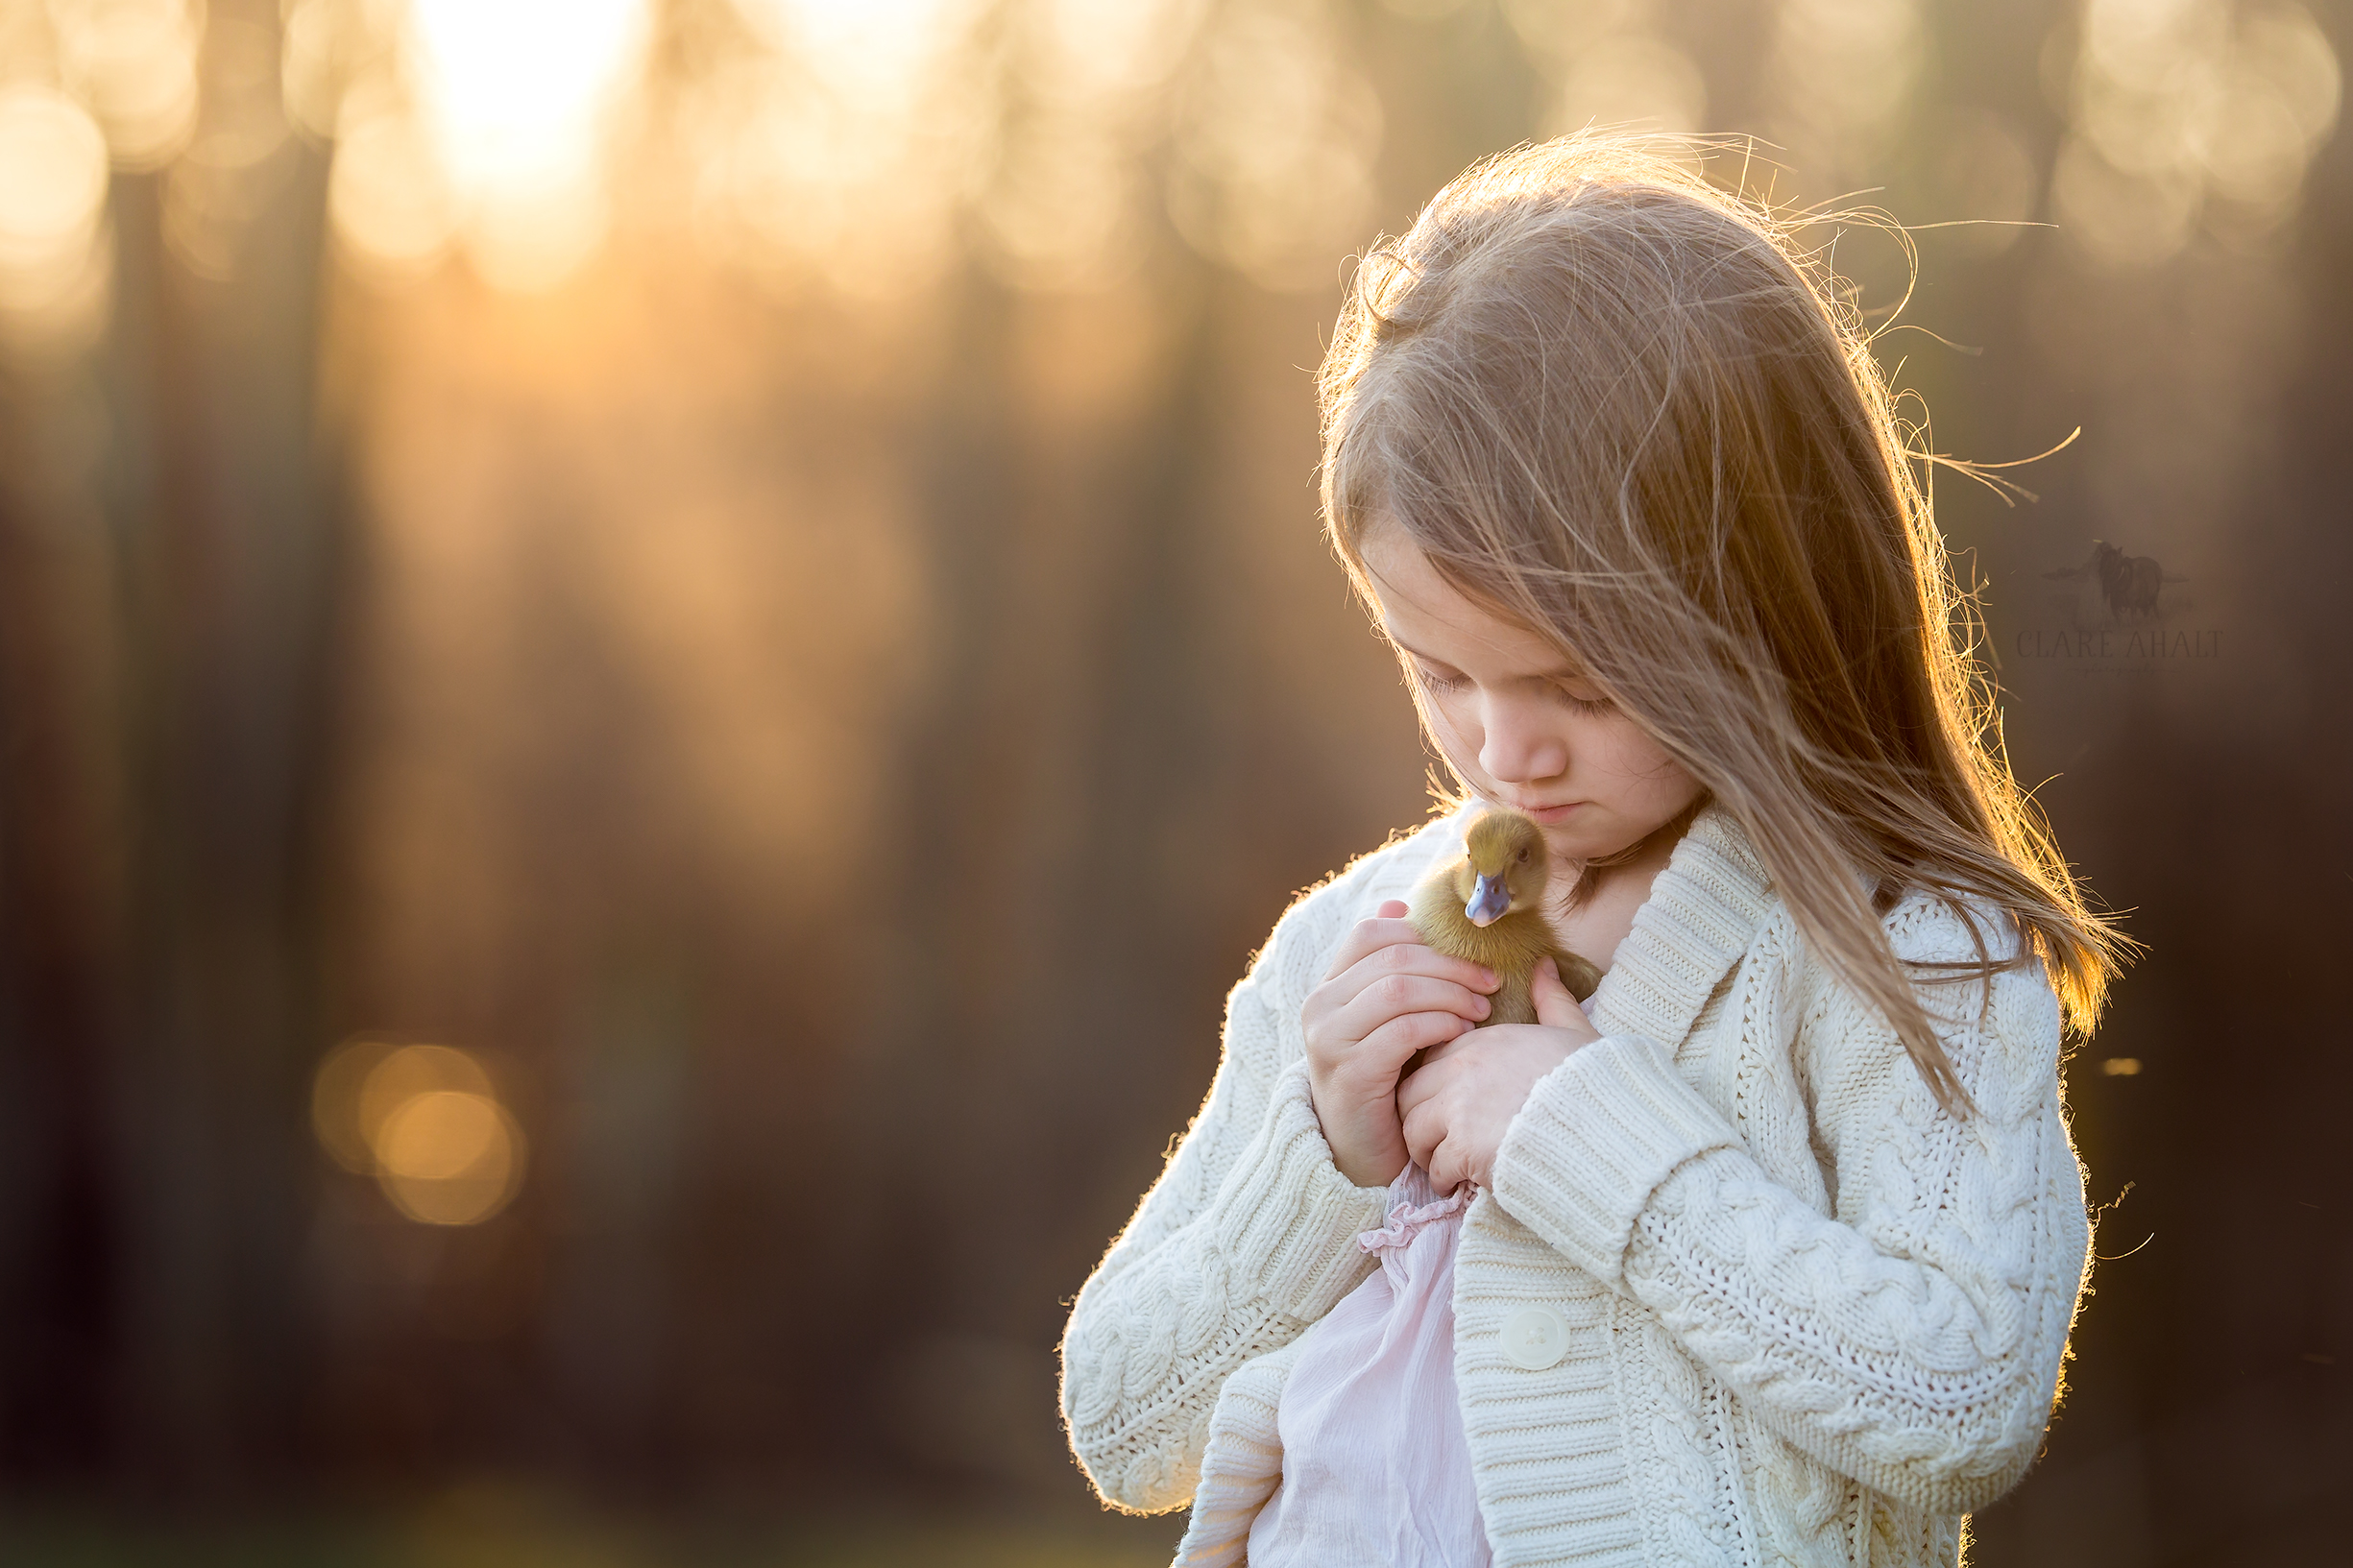 Veterinarian Dr. Ahalt's daughter with her duckling on their farm in Frederick MD